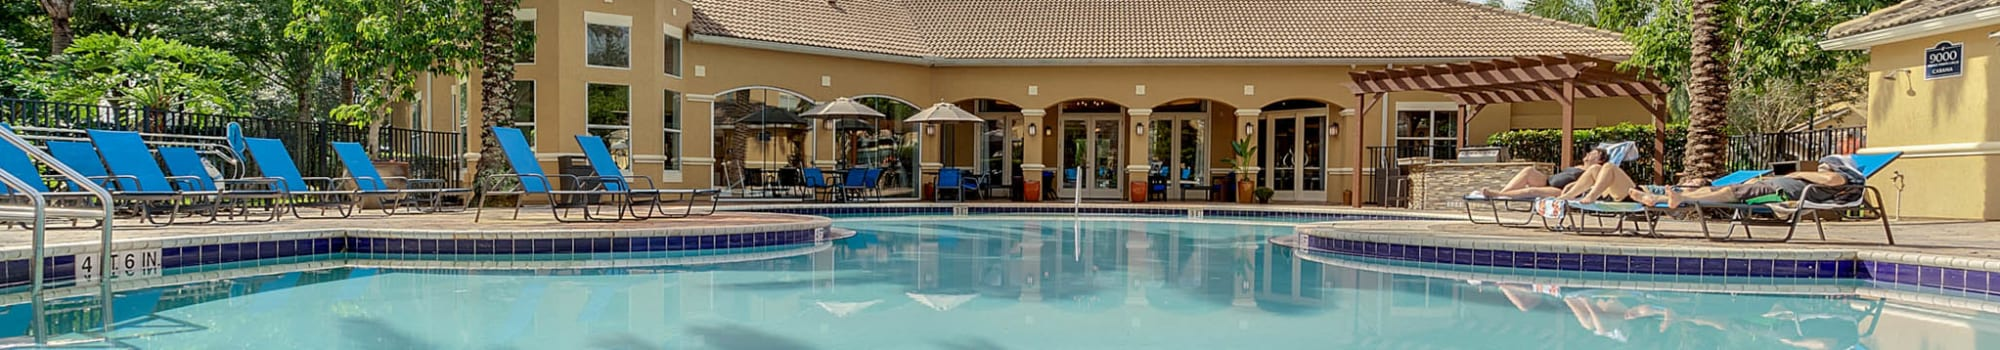 Reviews for Palms at World Gateway in Orlando, Florida